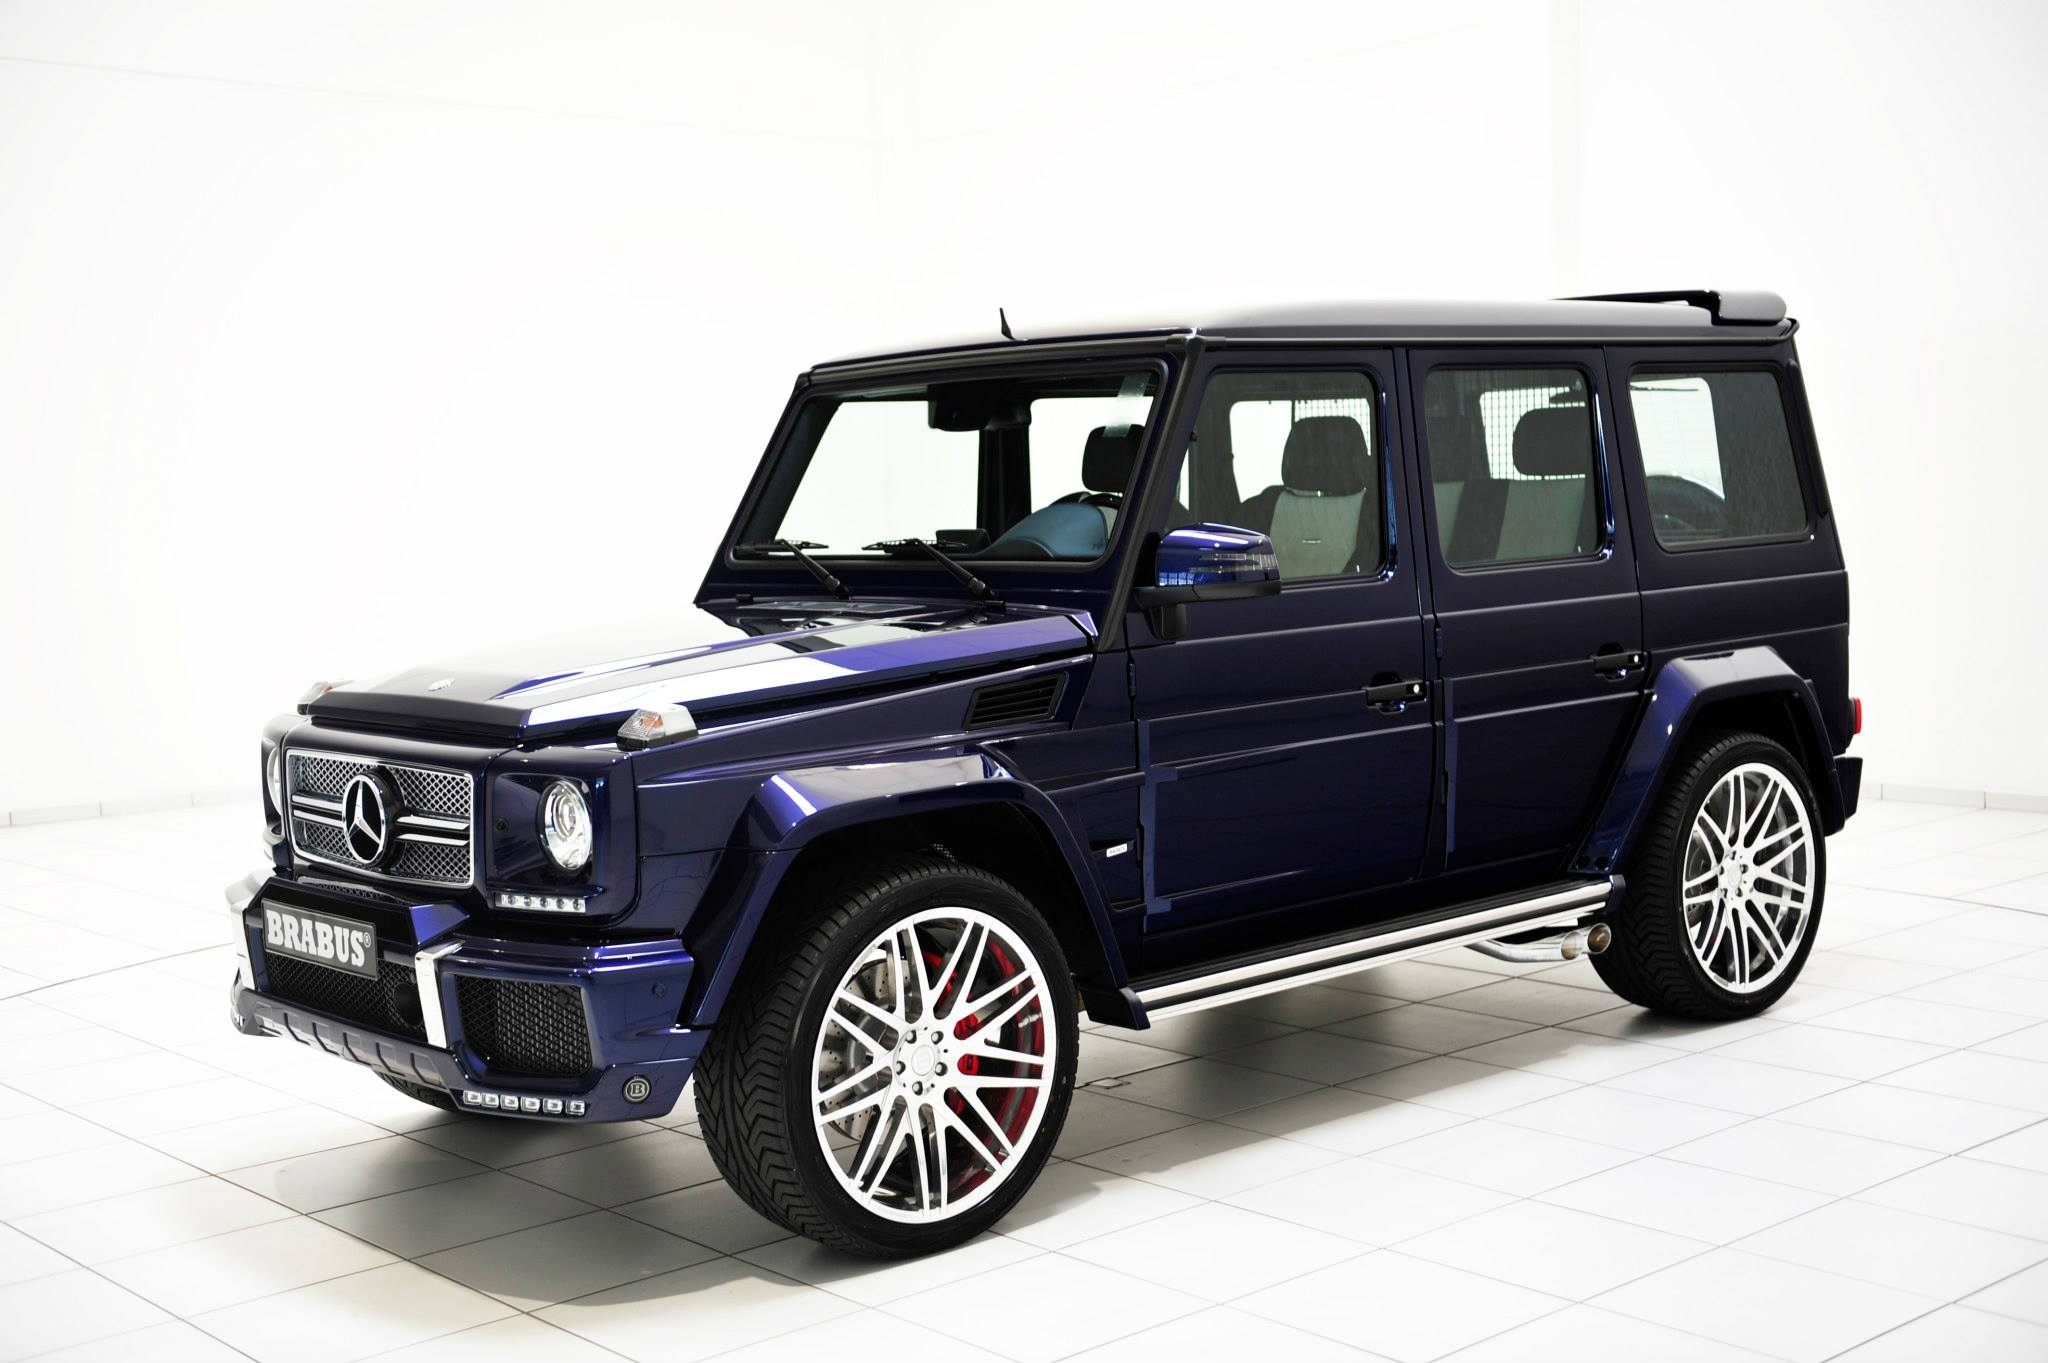 Mystic blue brabus widestar mercedes benz g63 for Mercedes benz usa llc brunswick ga